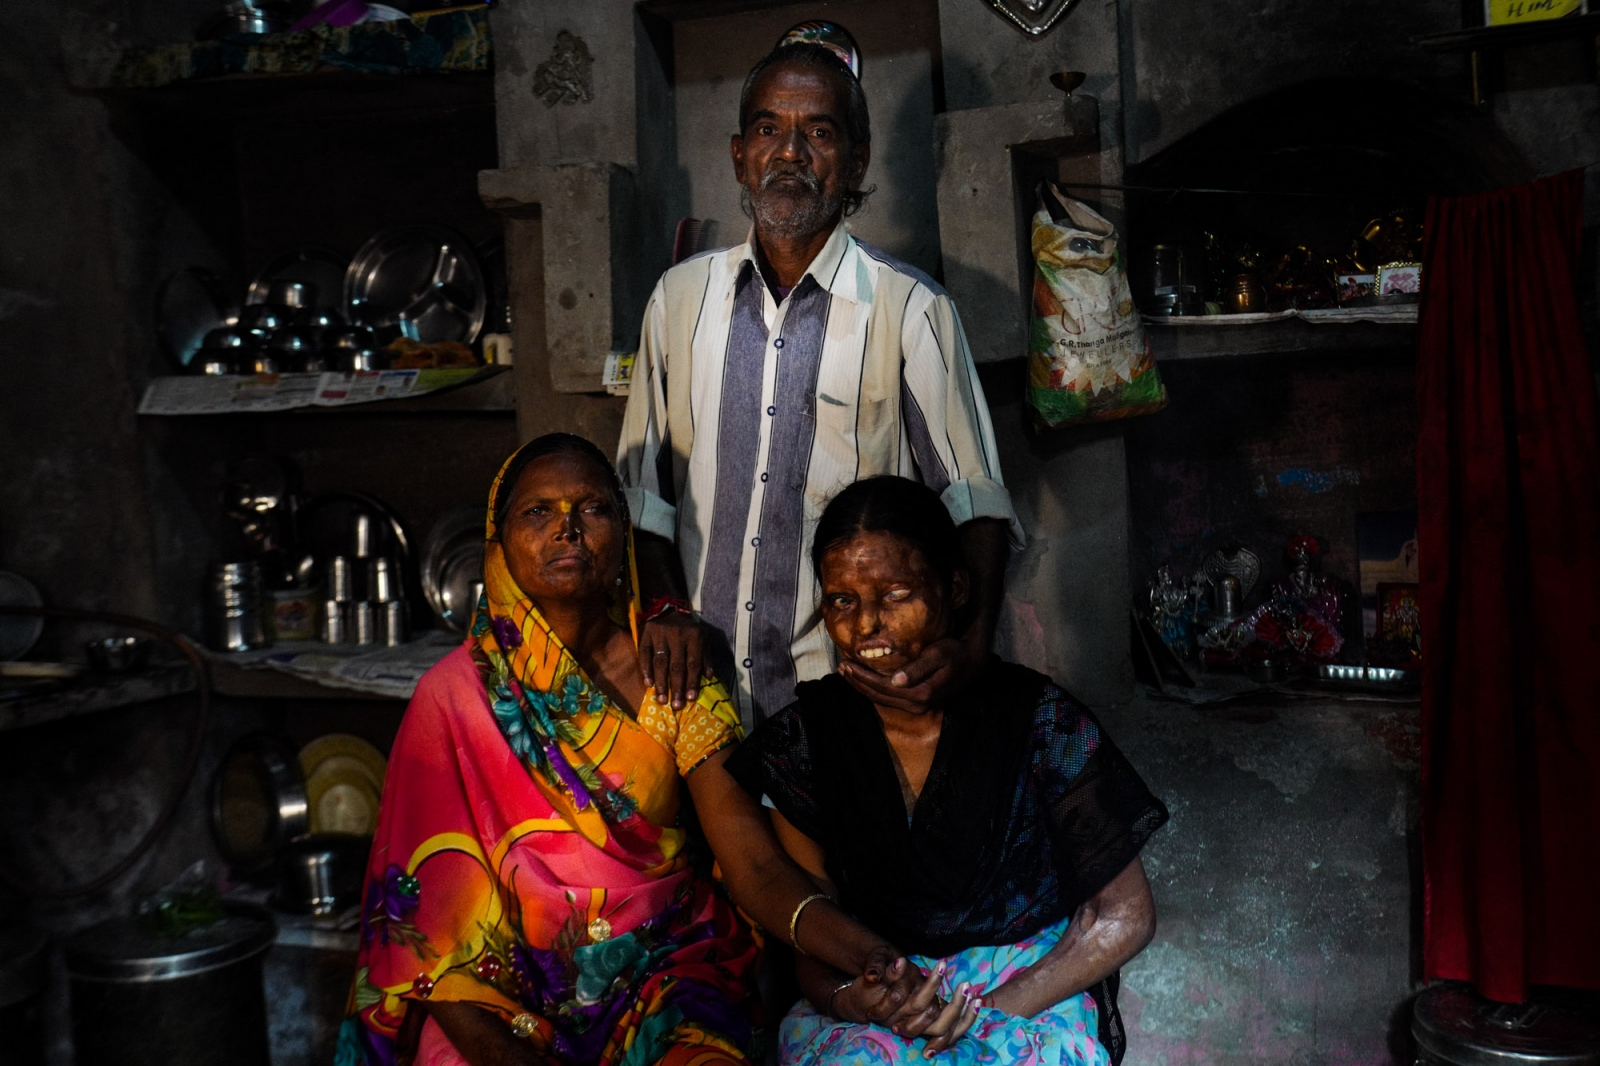 Agra, Uttar Pradesh, India. 04 November 2015. Gita (on the left) and her daughter Nitu posing for a portrait with Indrgit their husband and father. Gita is 45 and Nitu 24. Gita was only 24 years old when her husband Indrgit, a violent and alcoholic, attacked her out of jealousy. He threw acid at her, at Nitu and at Krishna, another daughter. Krishna died right after the attack, while Nitu, who was 3 years old back then, went almost completely blind. Indrgit was imprisoned, but after a while he asked for forgiveness. Gita forgave him and now they are still living together, sharing the same room. Gita and Nitu are both activist of the Stop acid attack association.